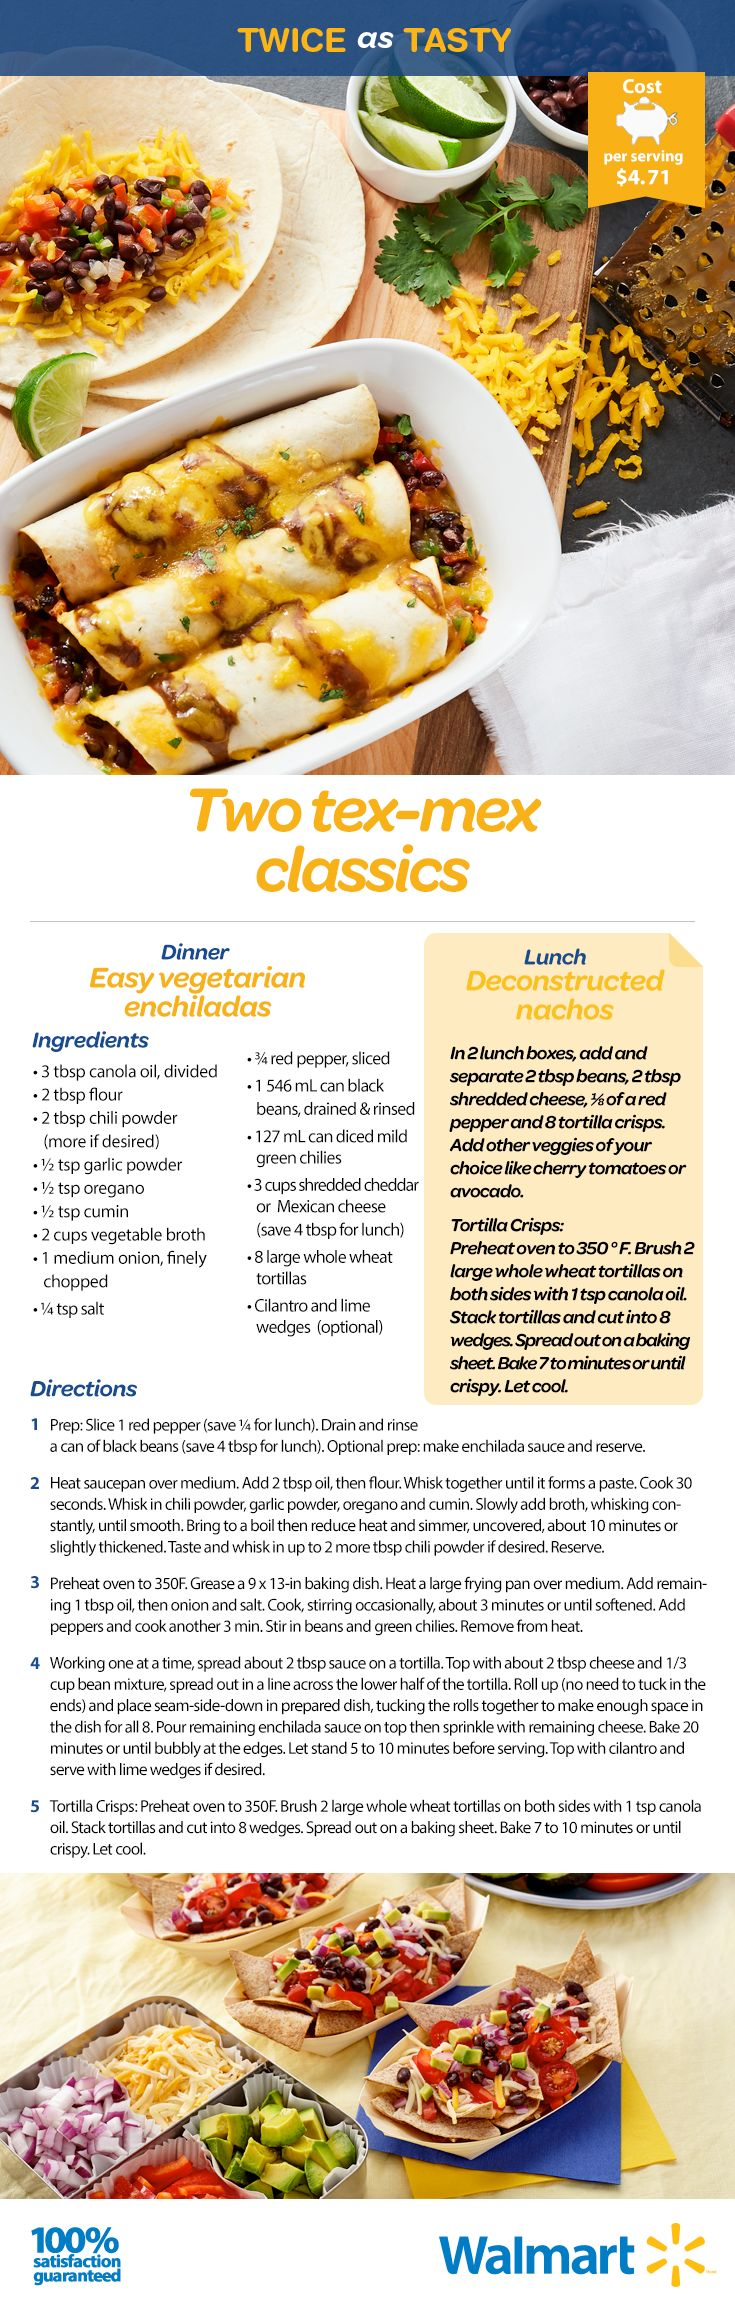 Vegetarian Enchiladas tonight, deconstructed nachos tomorrow. Either way, these Mexican-inspired dishes will please the entire family at mealtime!  #backtoschoolrecipes